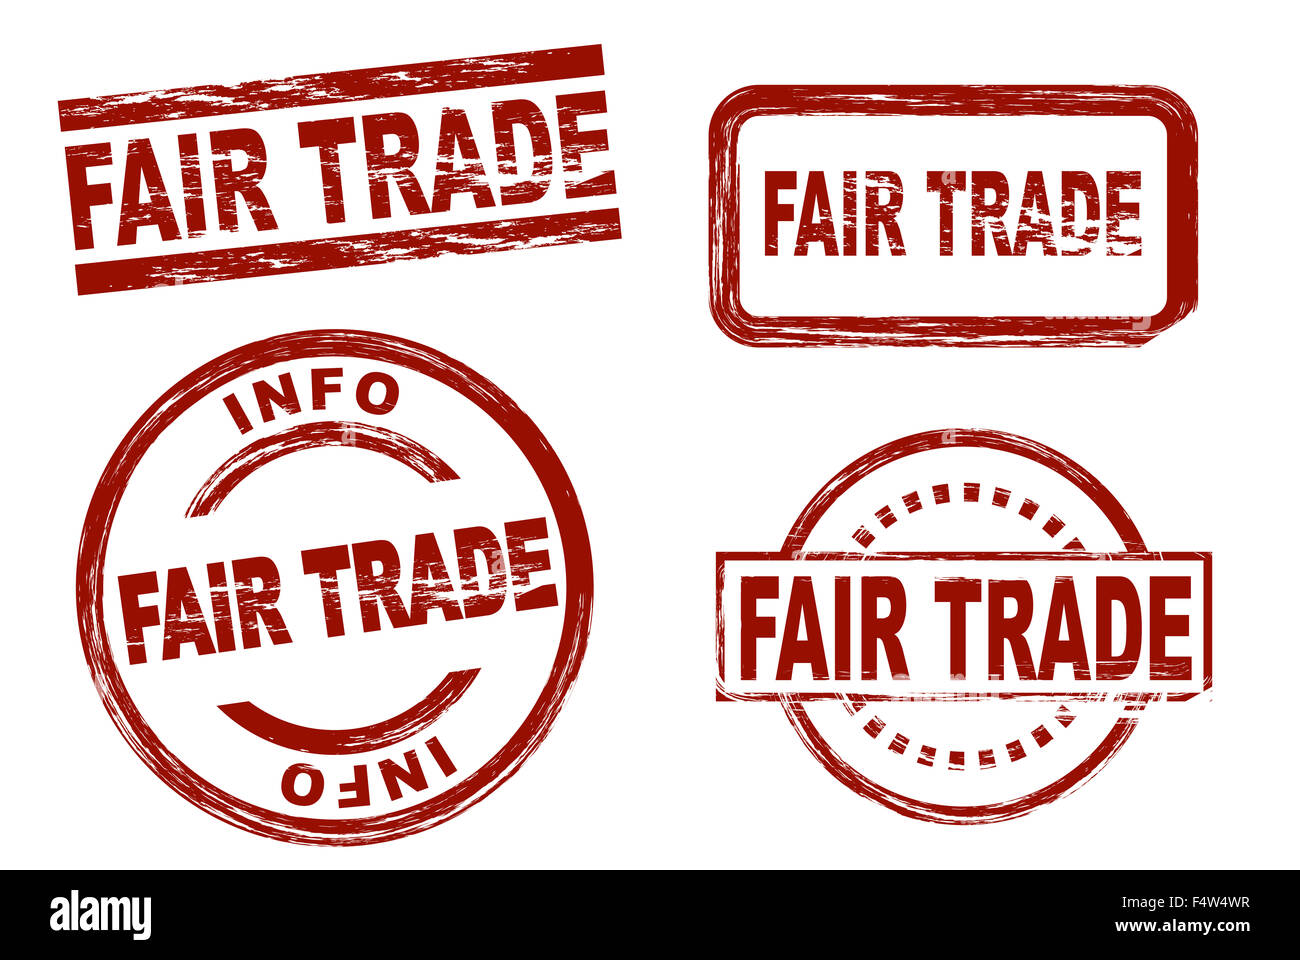 Set of stylized red stamps showing the term fair trade. All on white background. - Stock Image